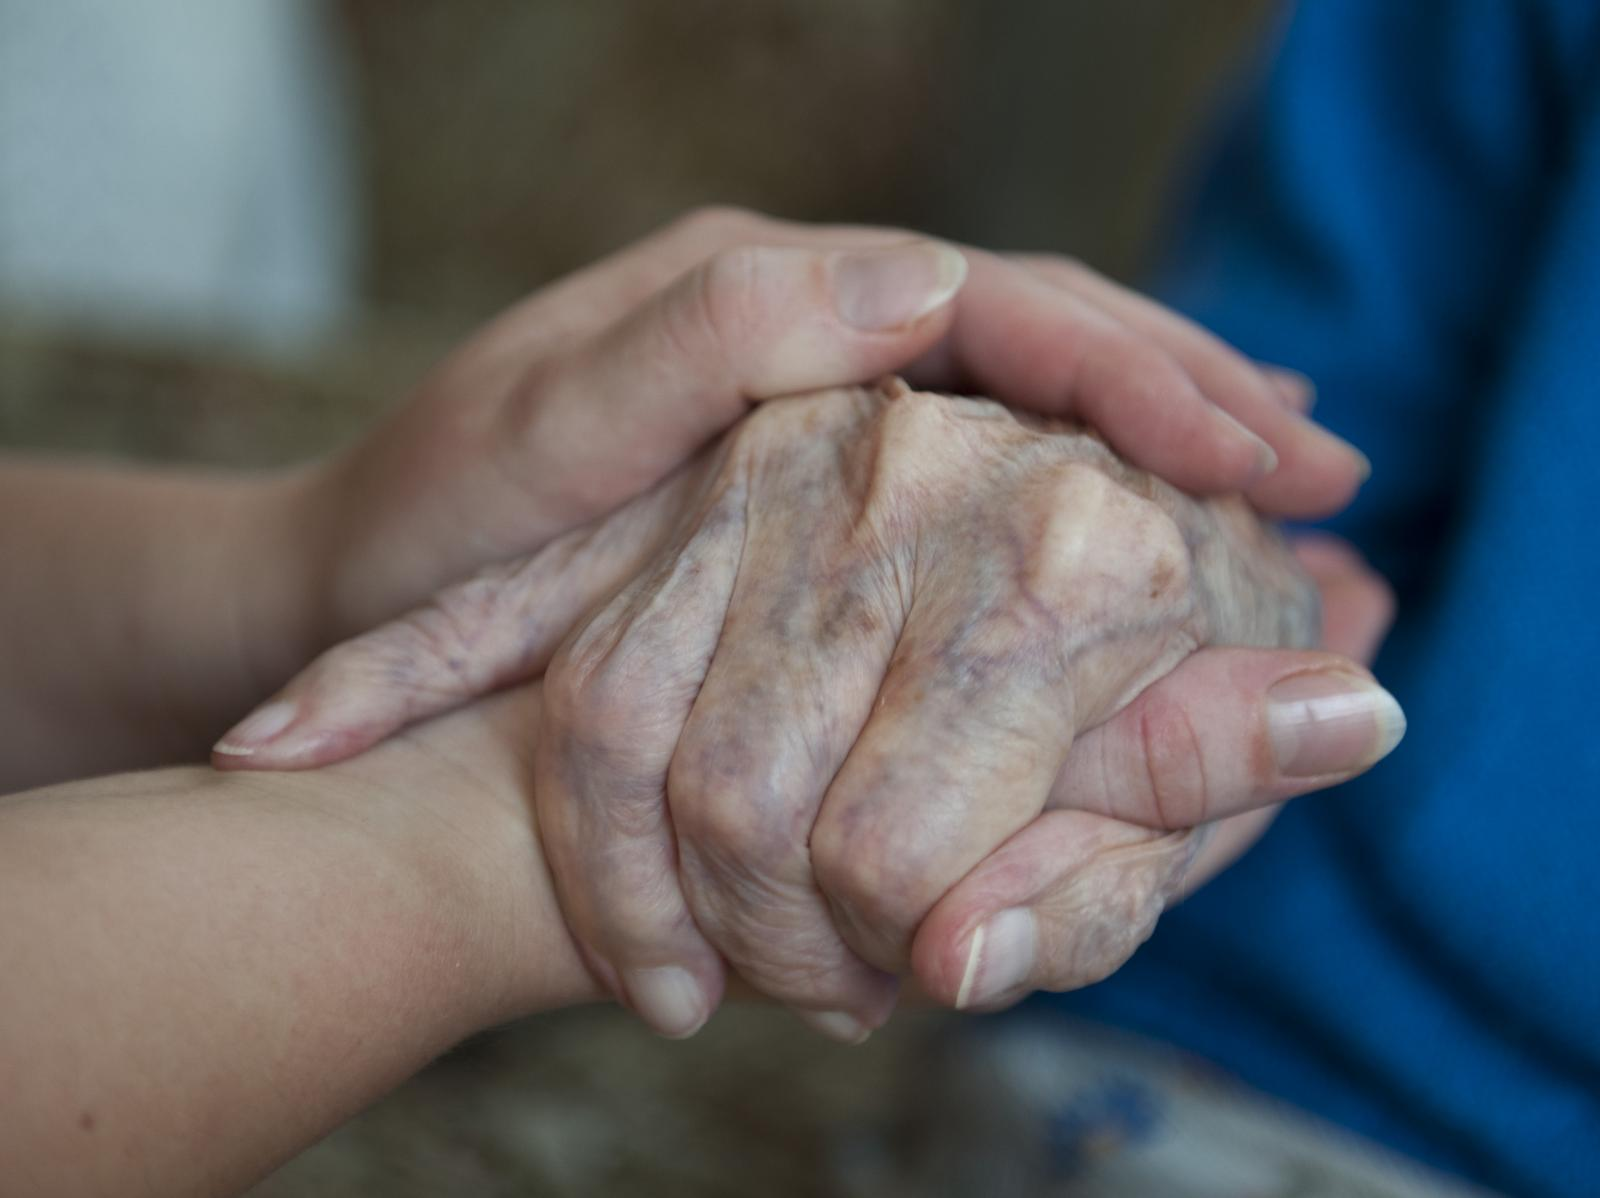 World Day for Grandparents and the Elderly - Diocese of Westminster